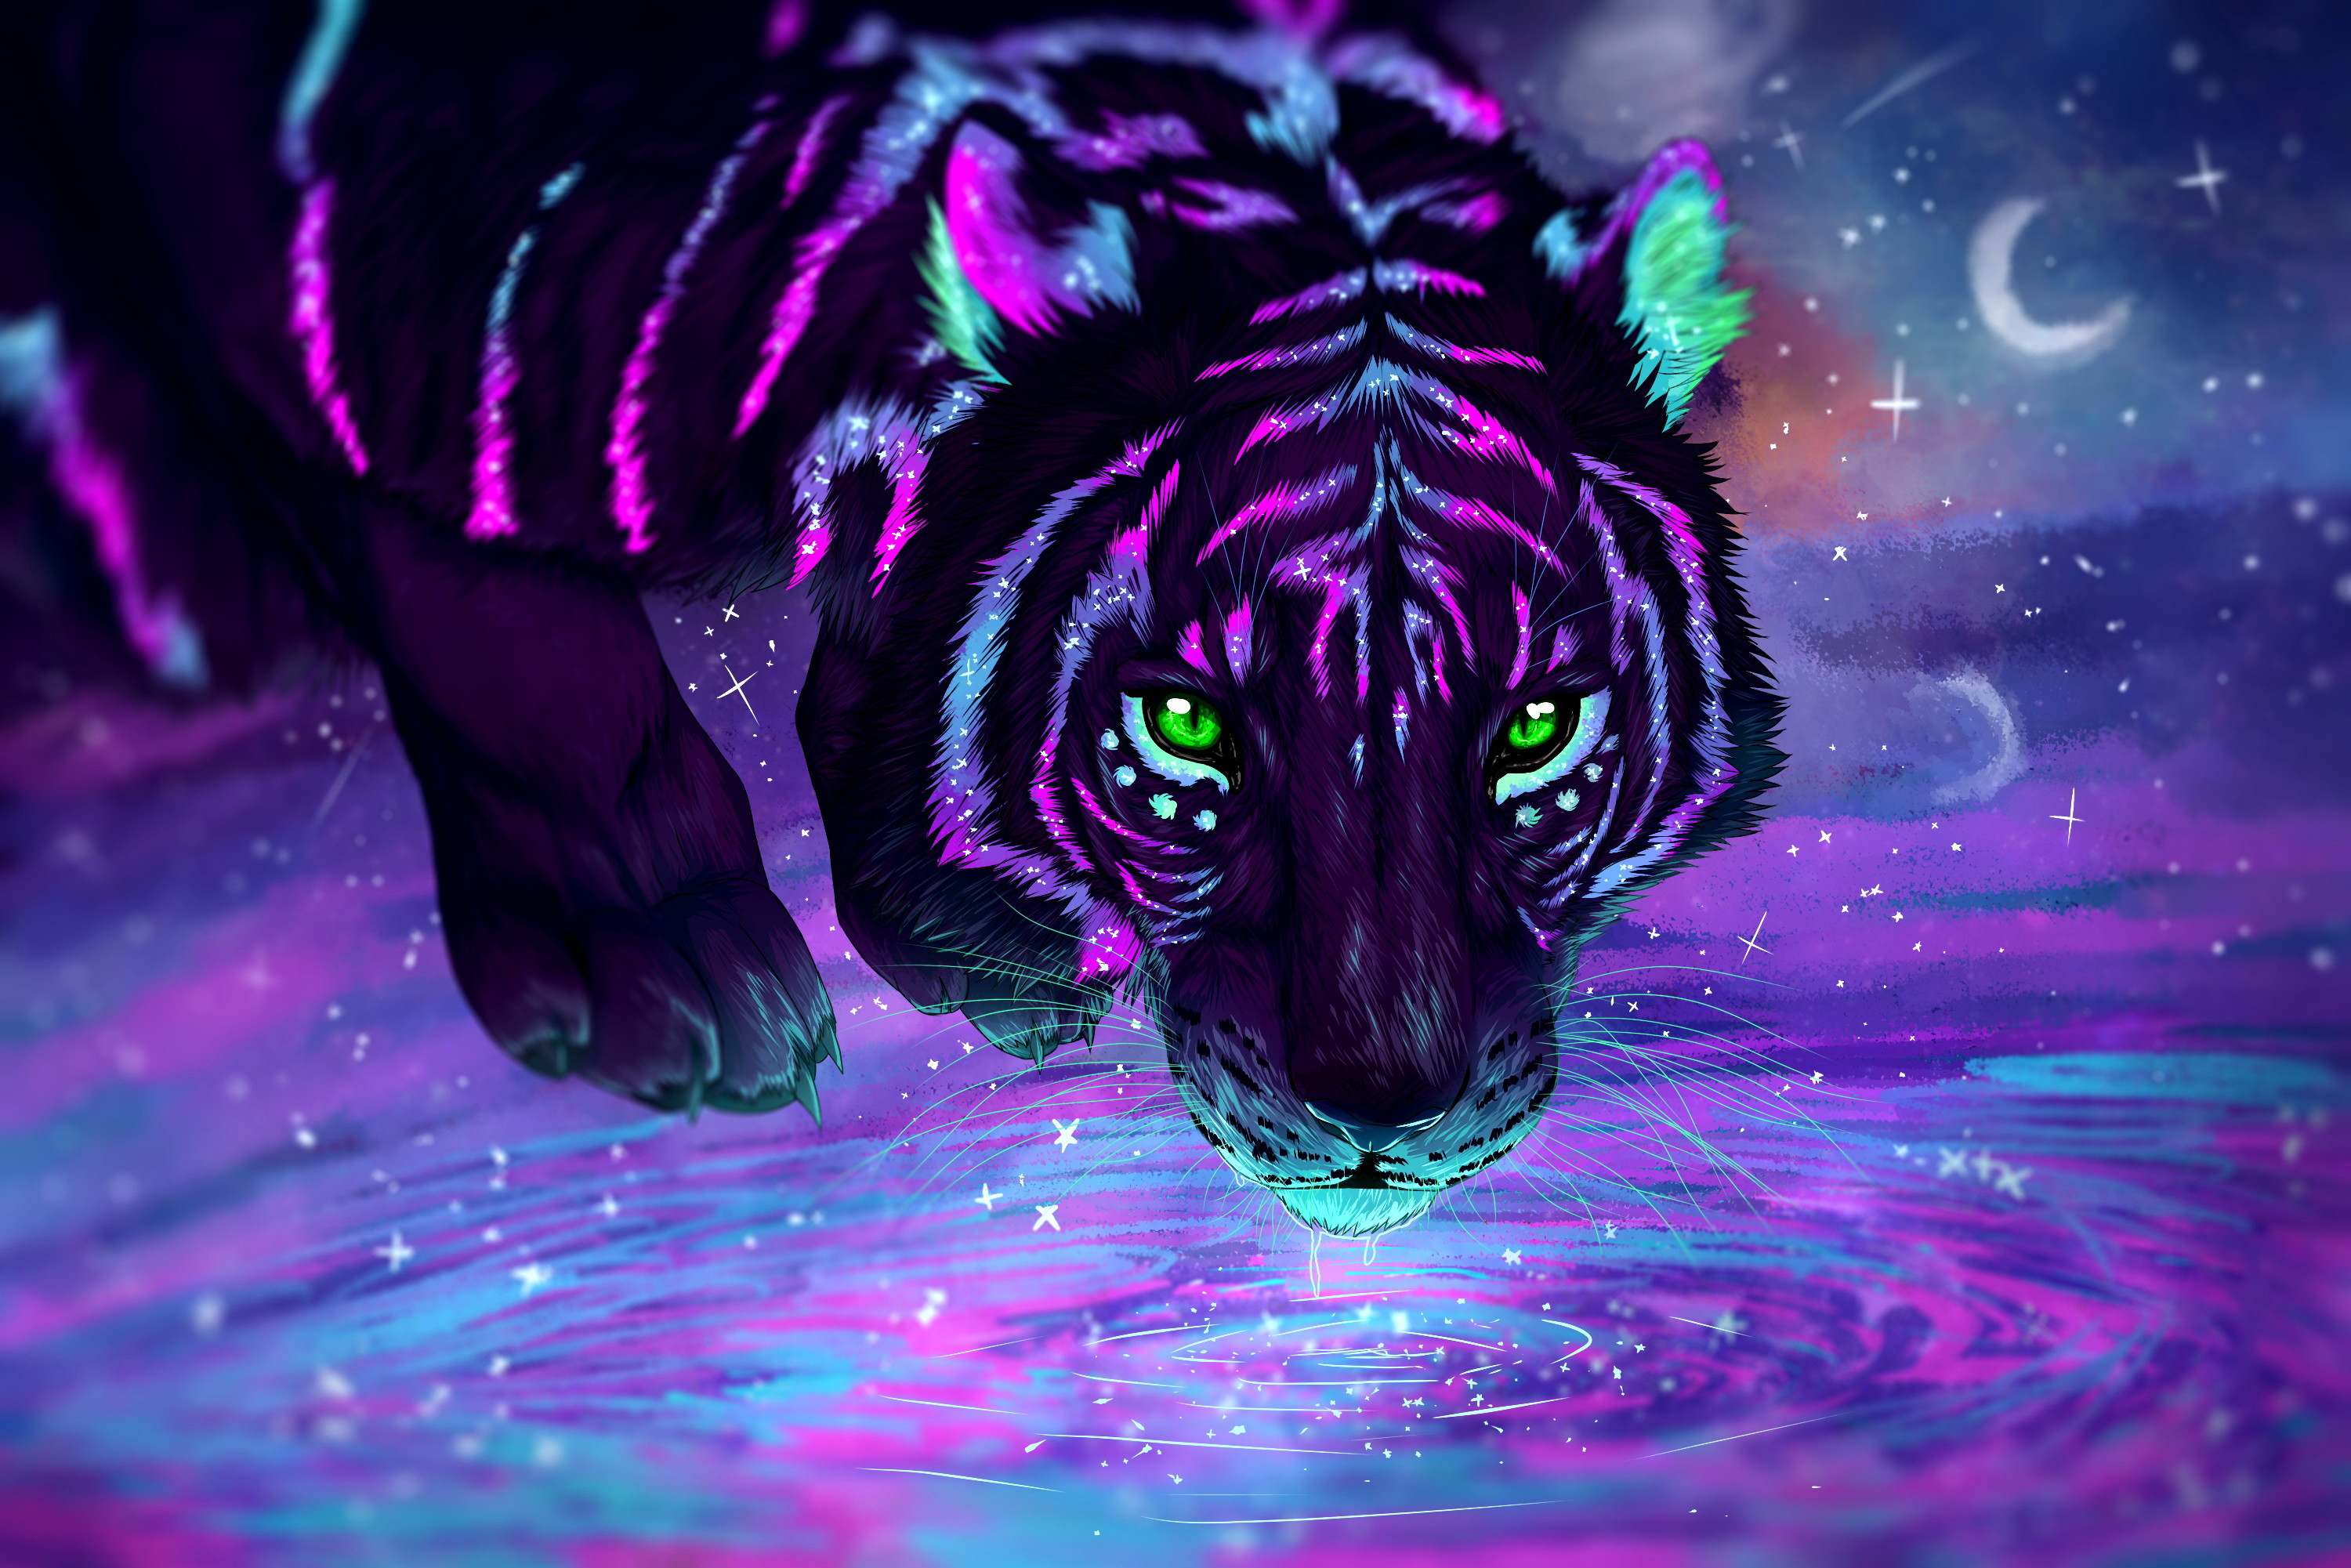 Neon Tiger Wallpapers   Top Neon Tiger Backgrounds 3000x2001